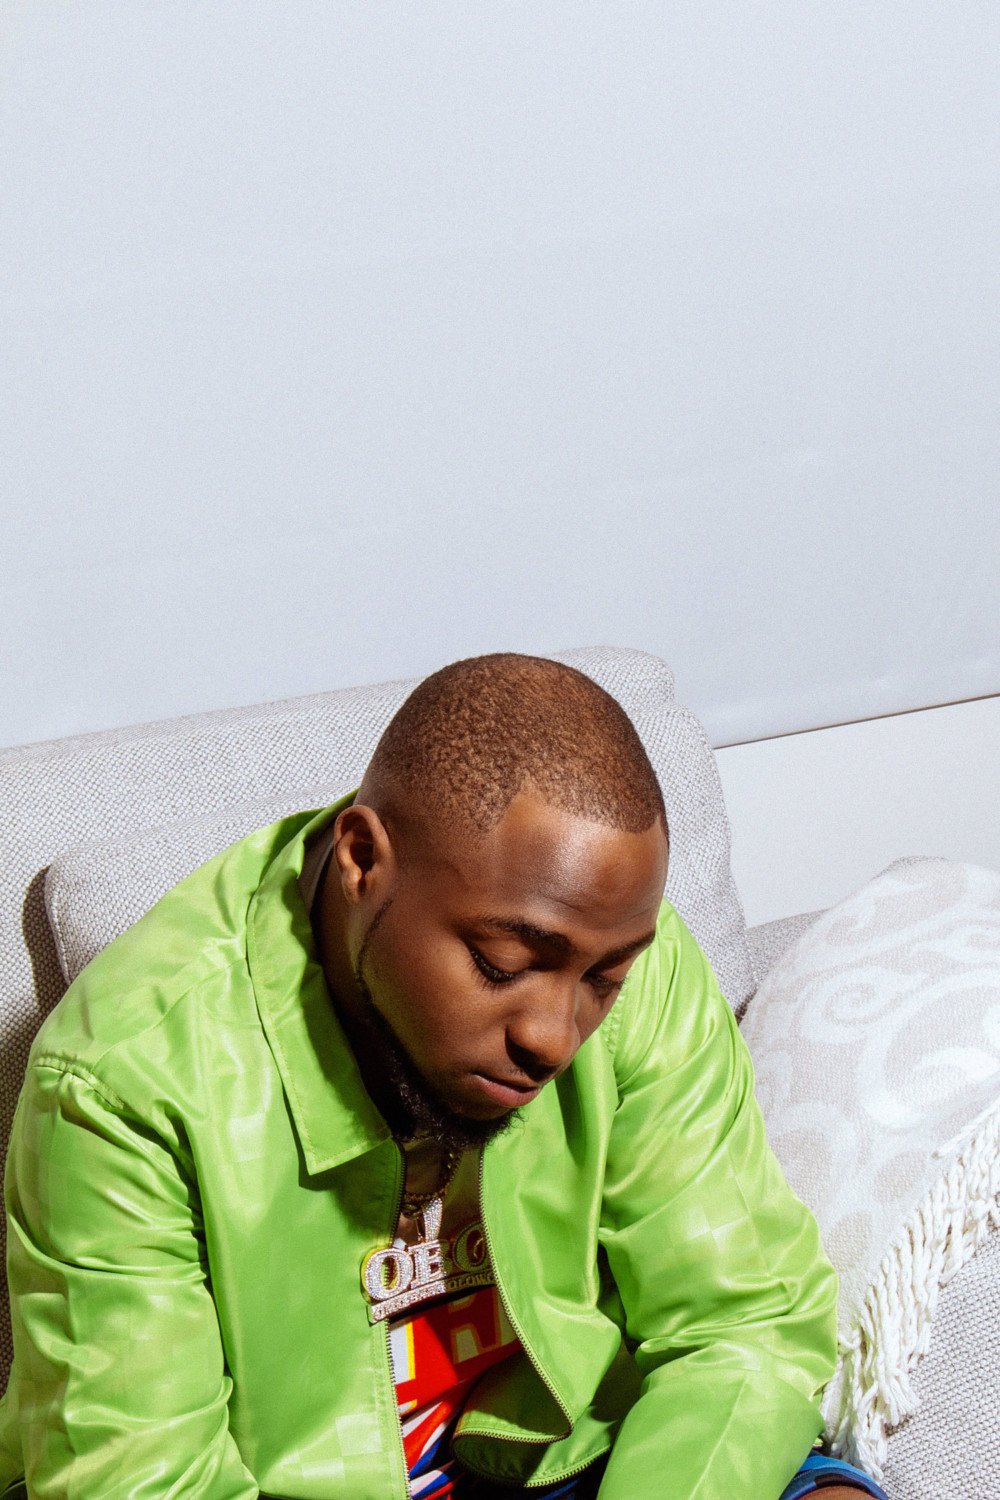 [VIDEO] Davido And Crew Accused Of Stealing In The UK